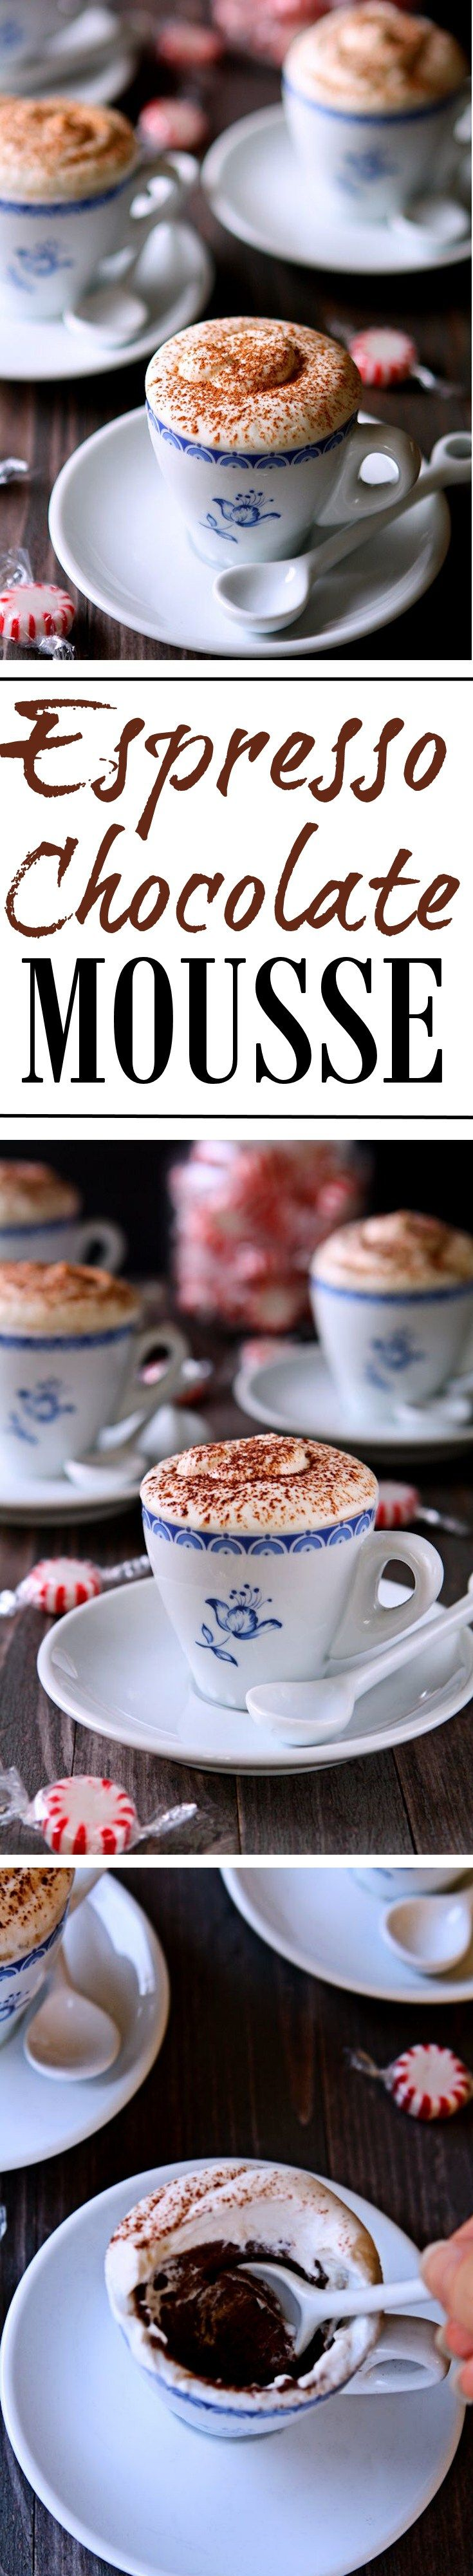 Espresso Chocolate Mousse | Oh so rich and chocolate-y! Treat yourself and your loved ones to this delicious and decadent dessert! | heavenlyhomecooking.com